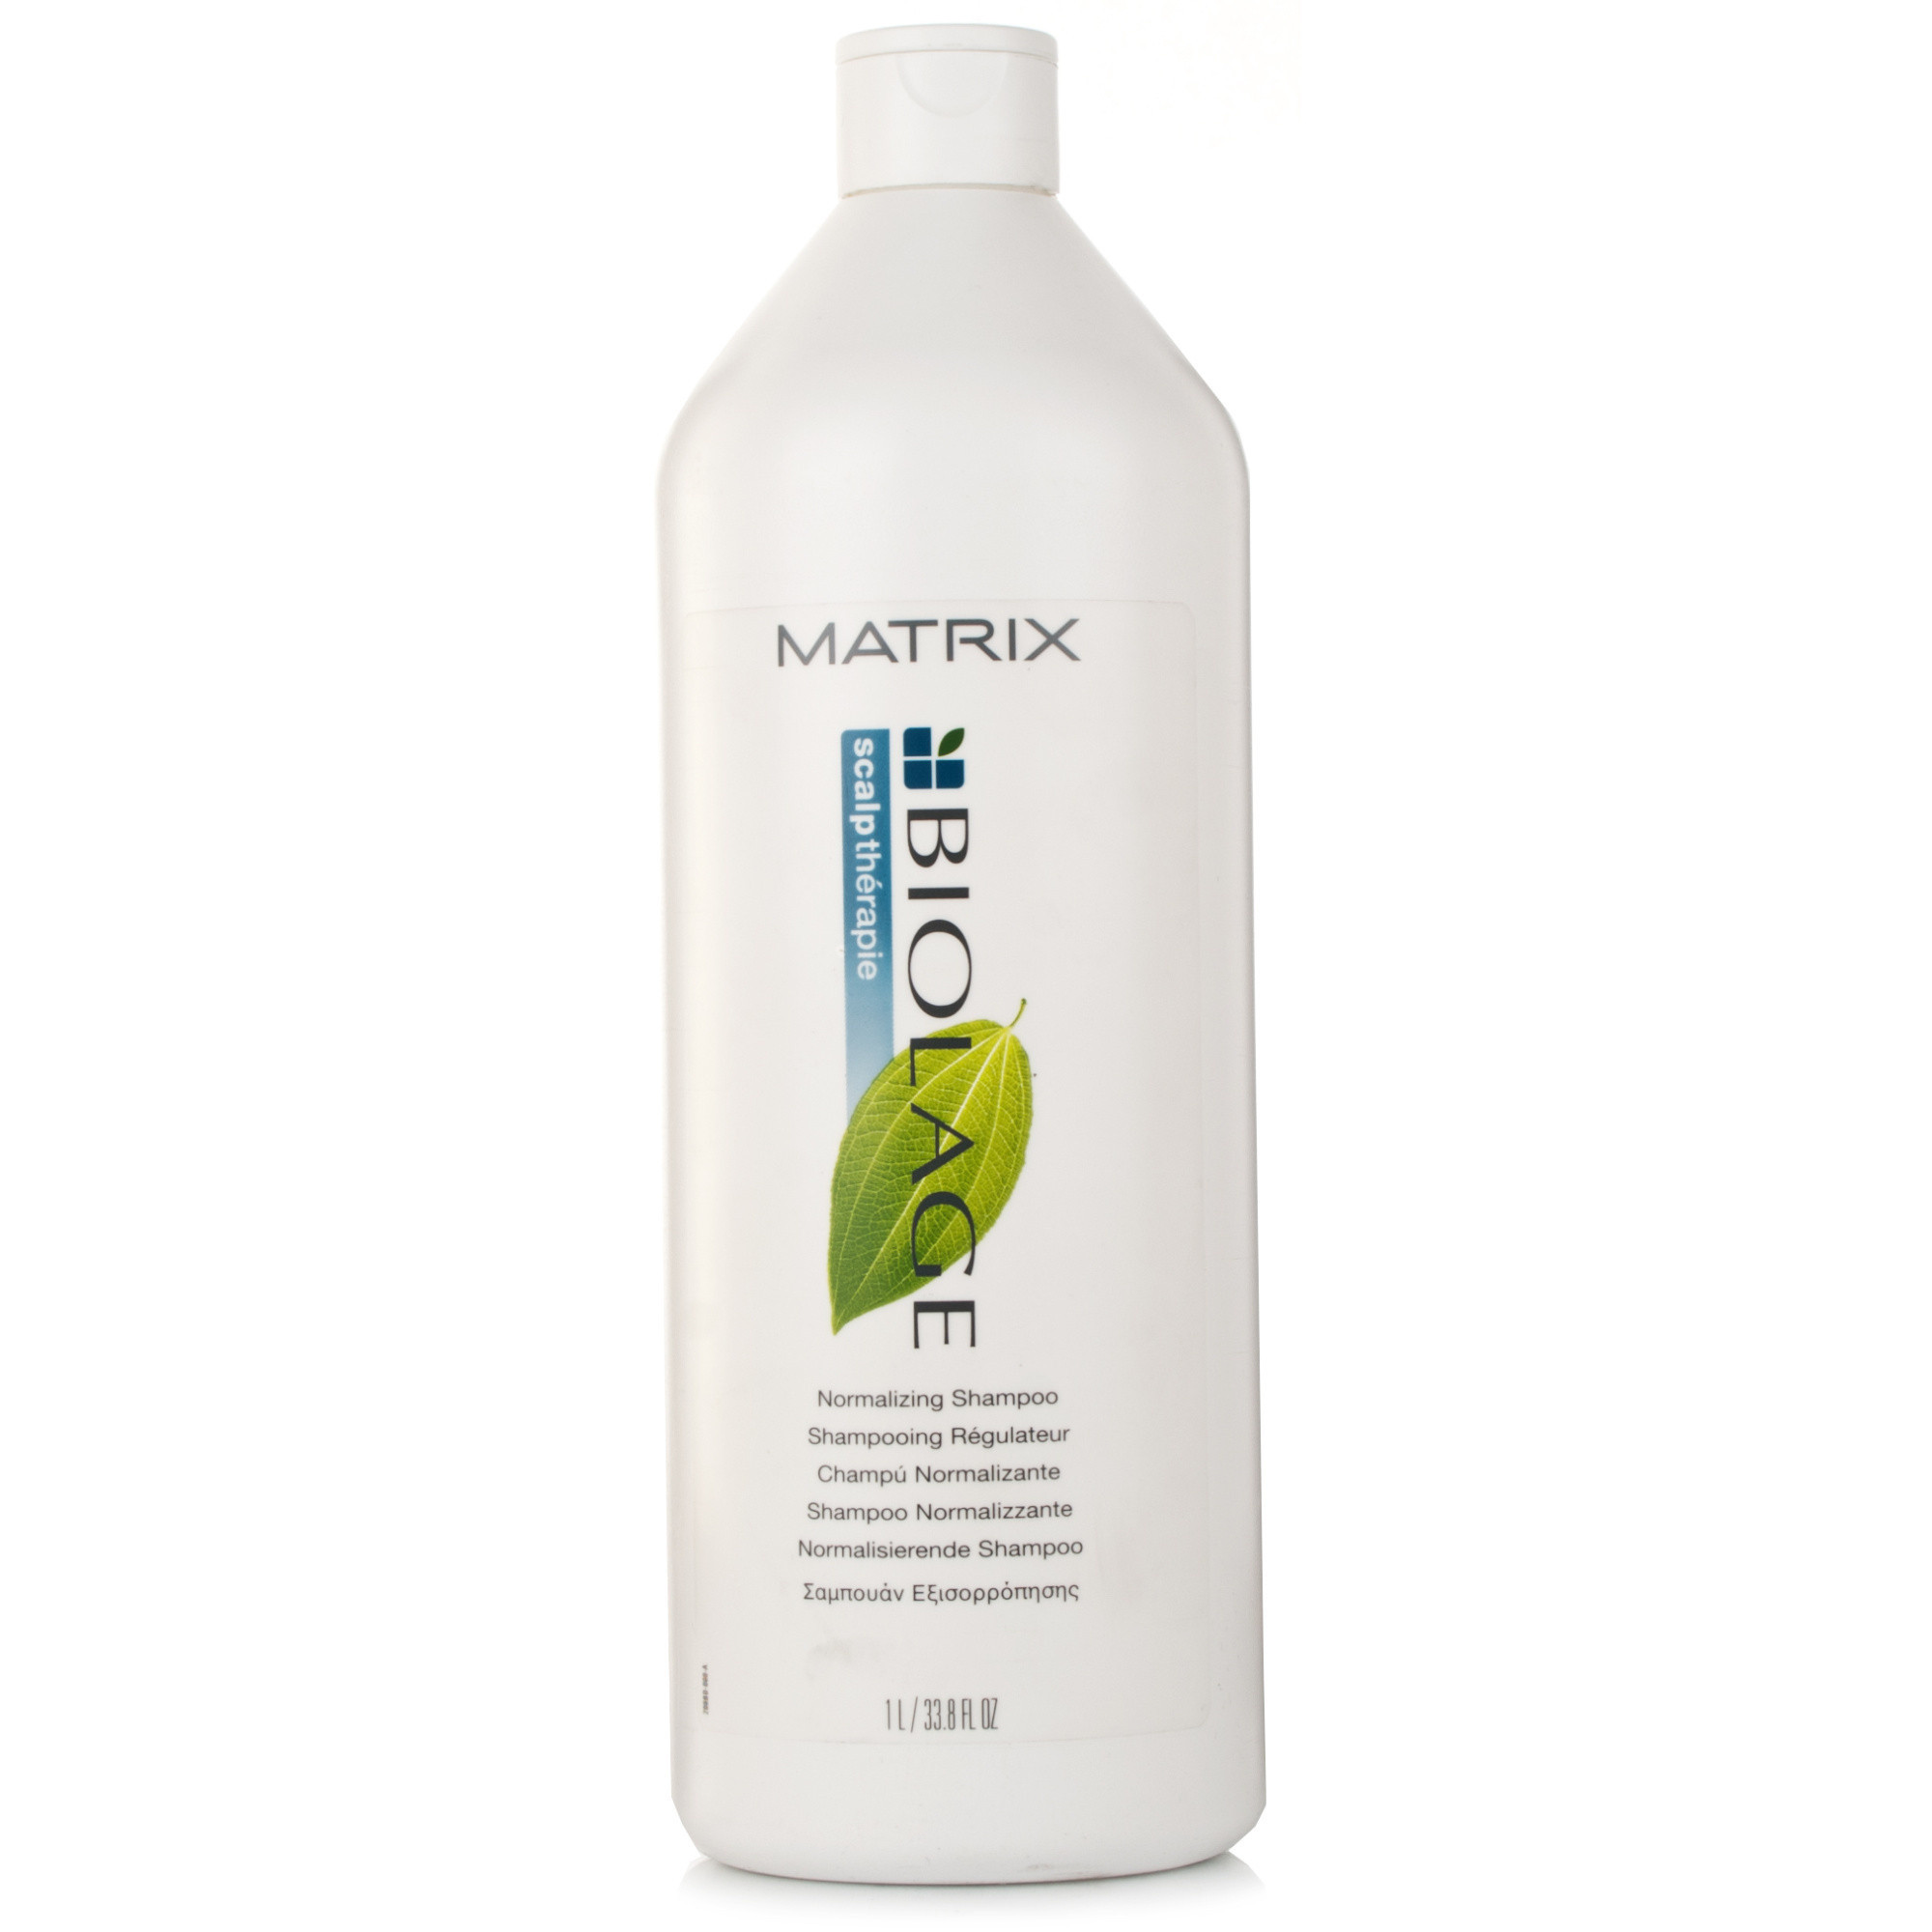 Matrix Biolage Scalptherapie Normalizing Shampoo